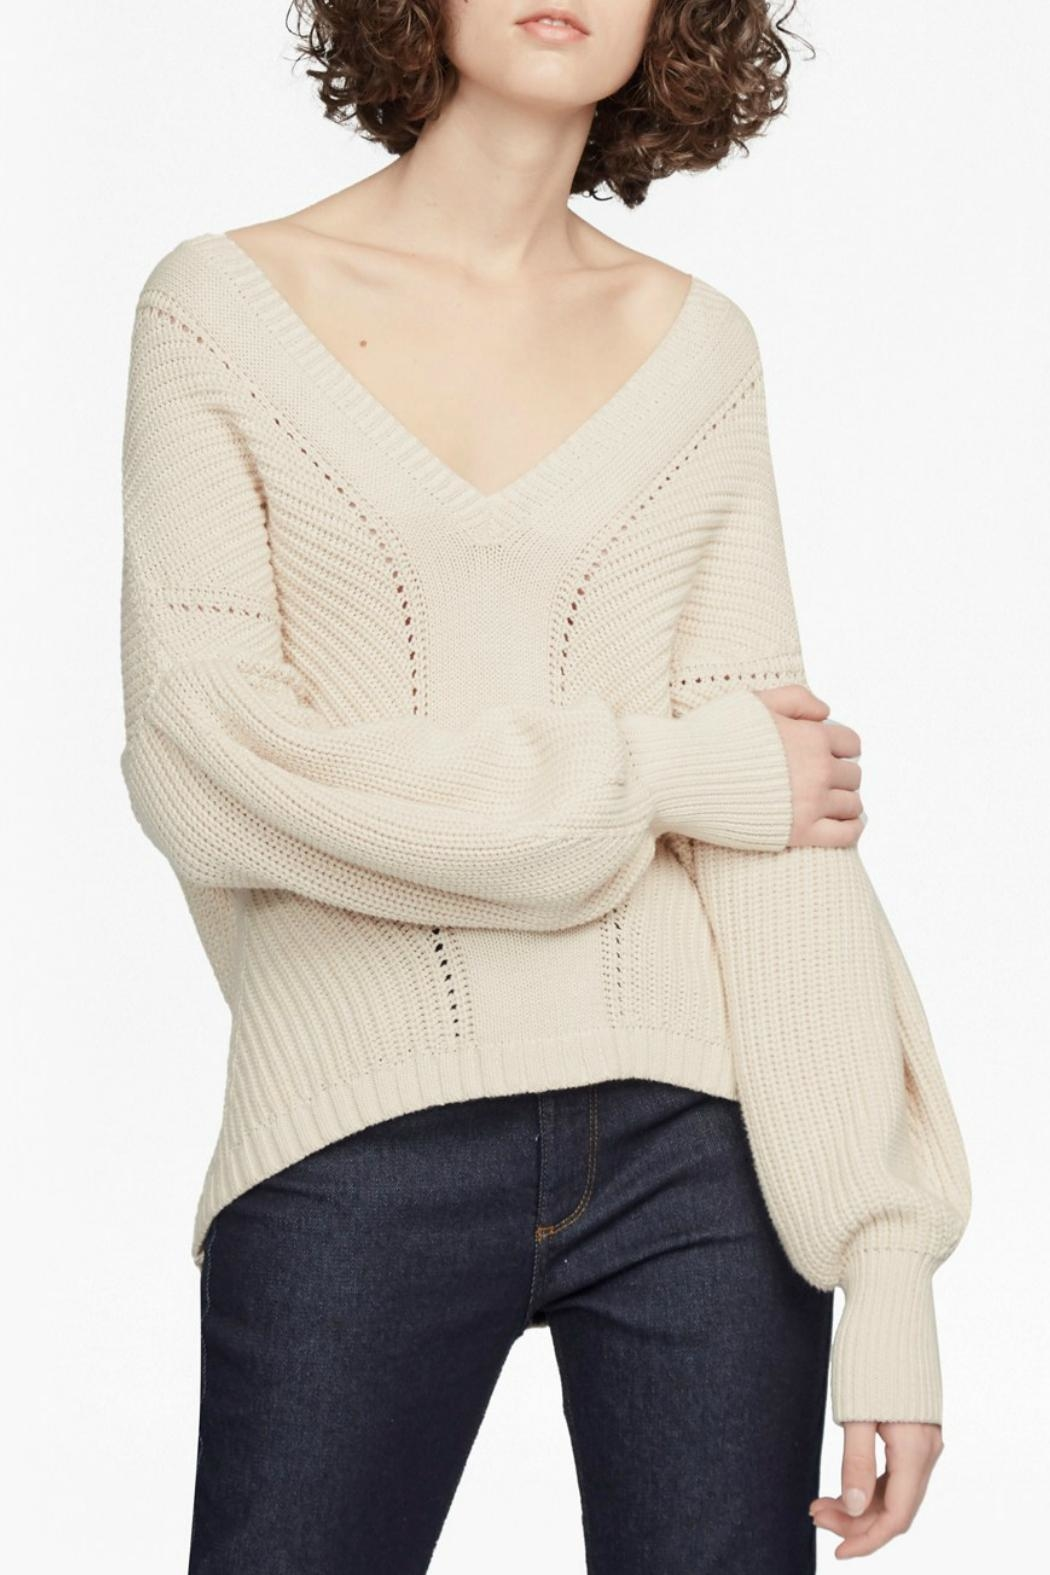 French Connection Millie Knit Sweater - Main Image